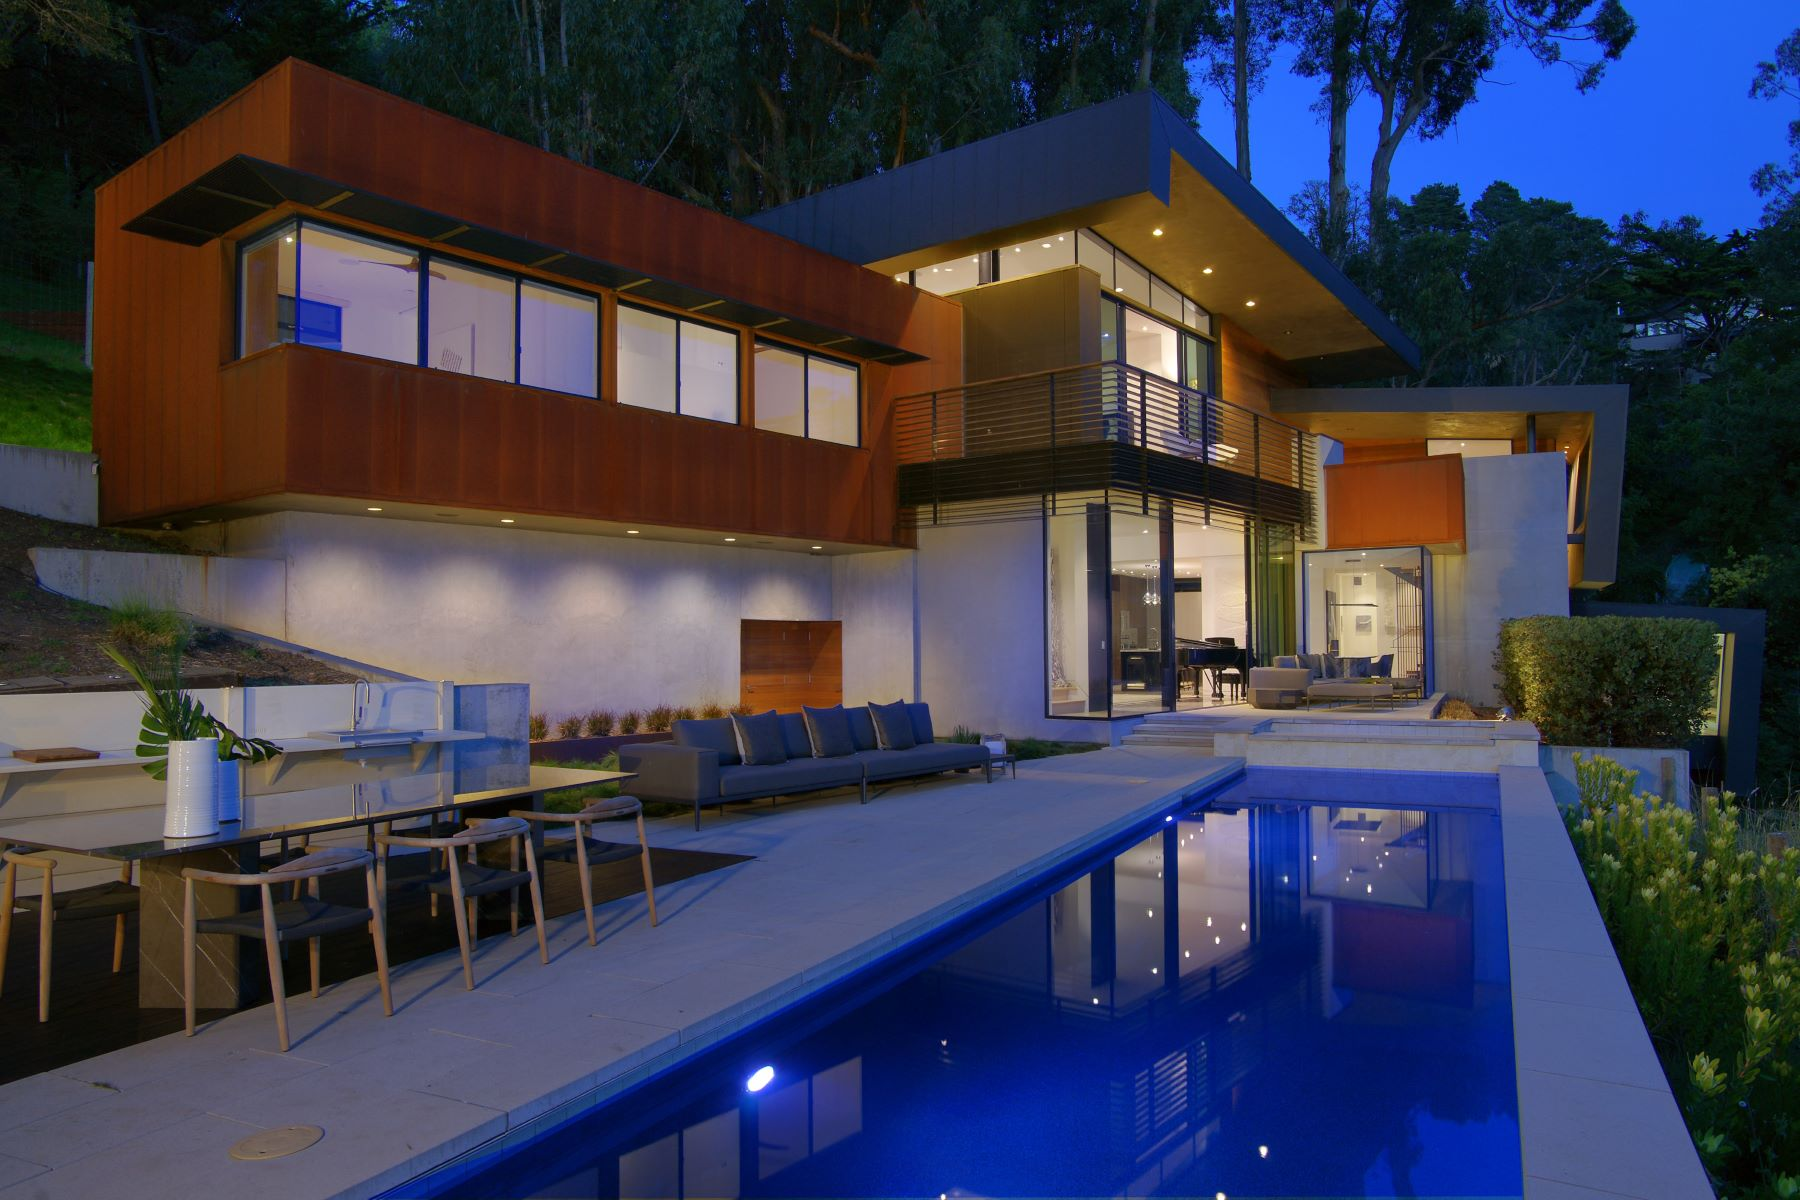 Single Family Homes for Sale at The Best of Mill Valley 432 Lovell Ave, Mill Valley, California 94941 United States